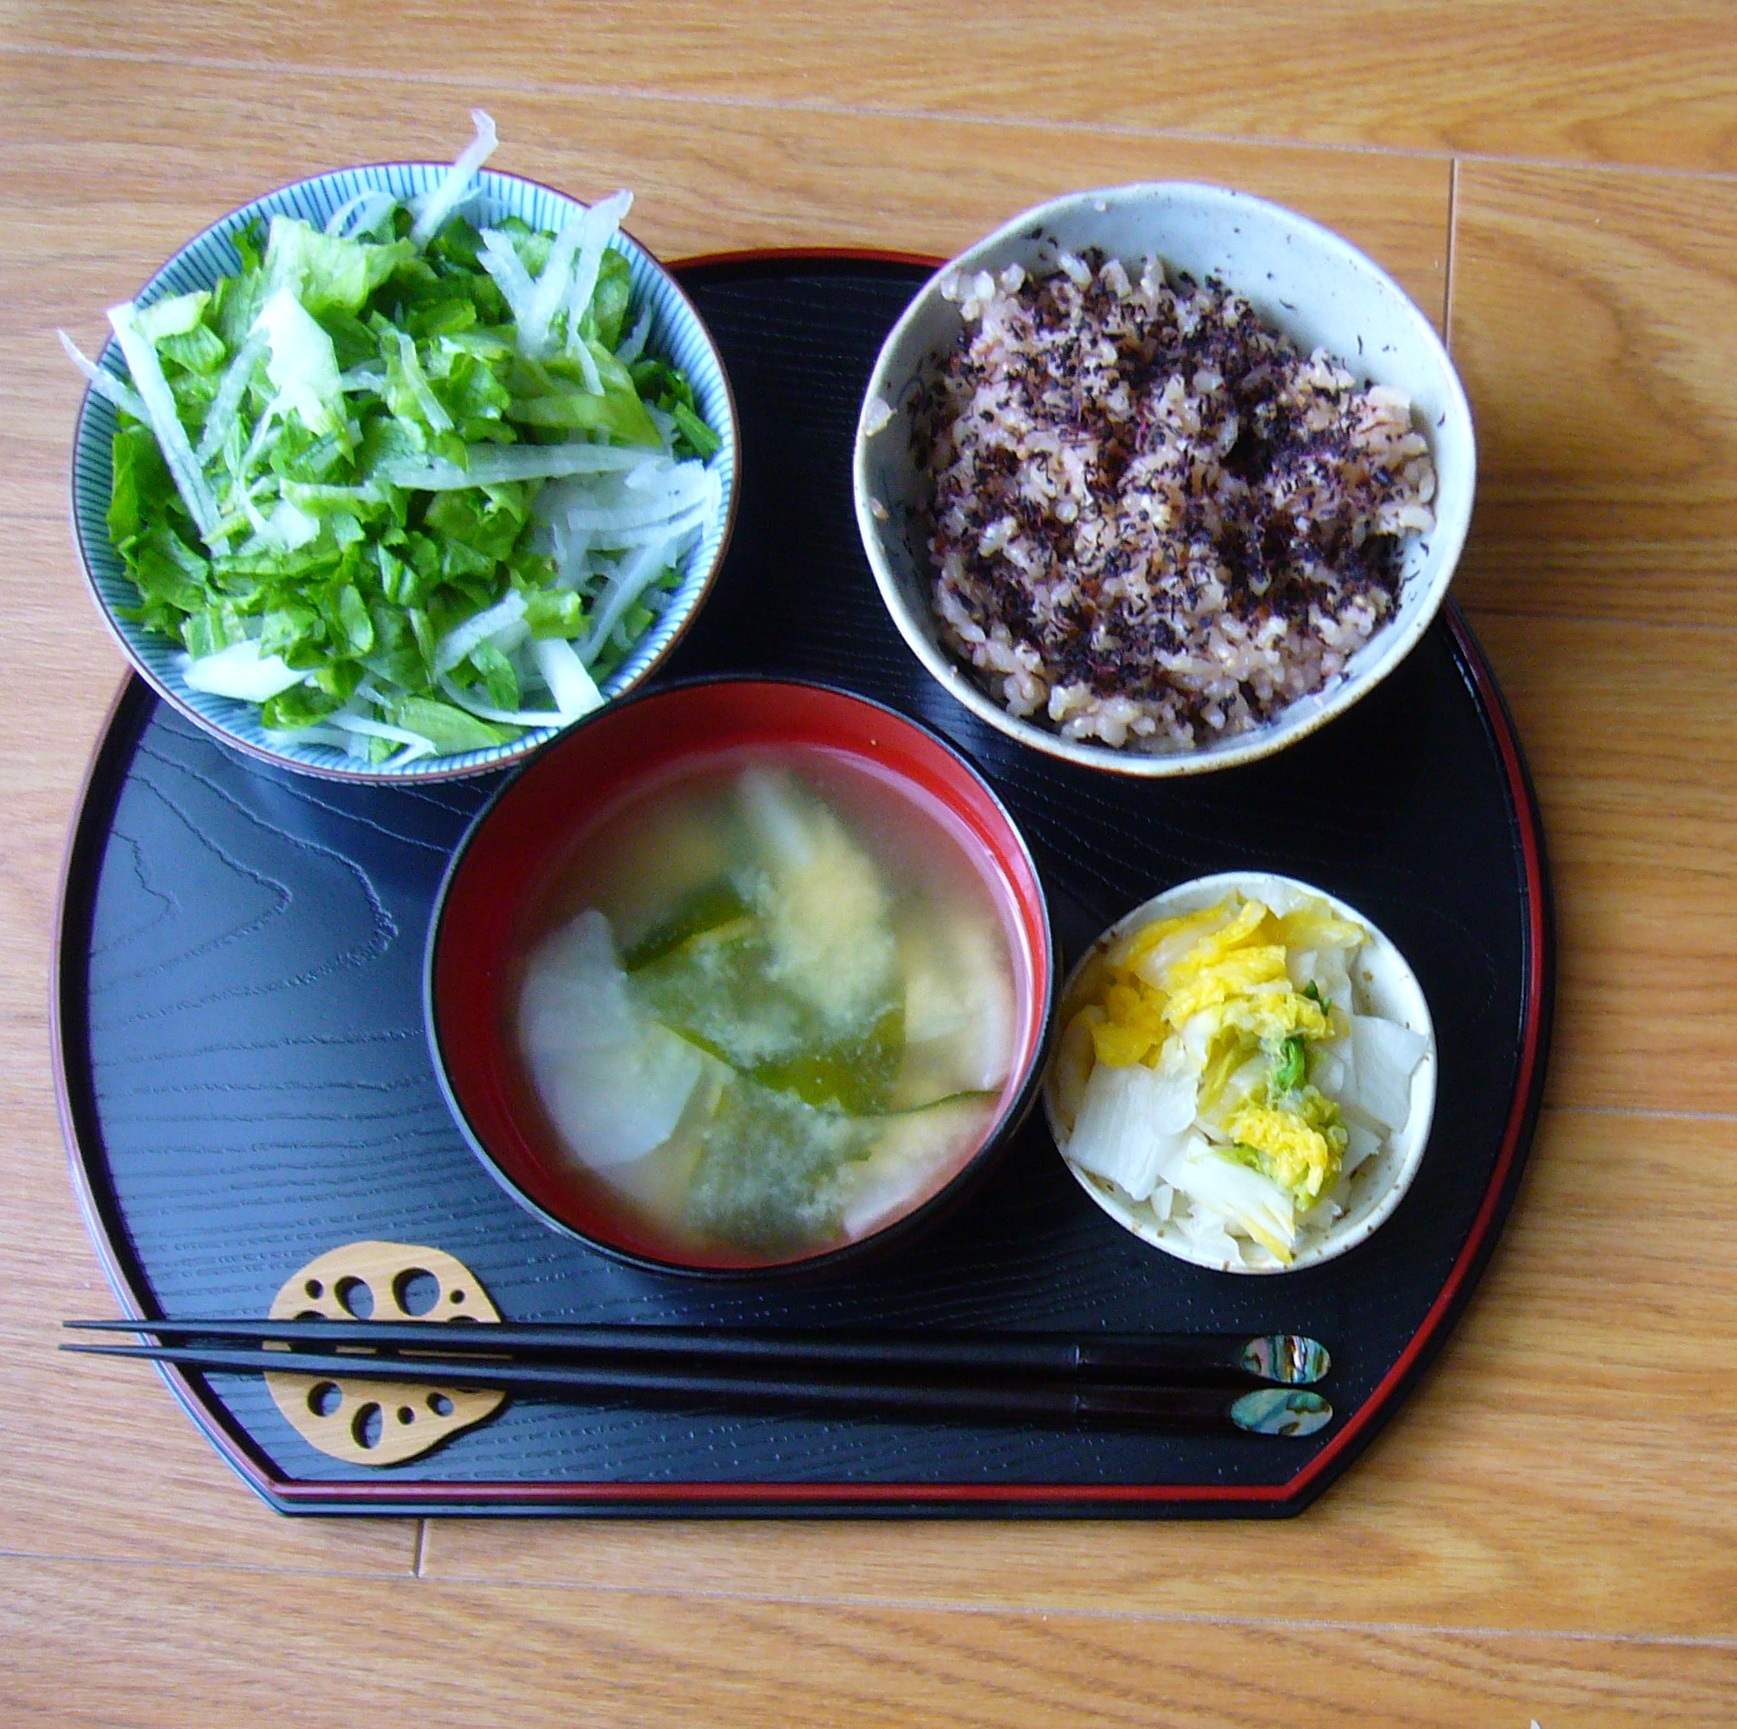 ! You have the basis for a simple Japanese home cooked meal. Enjoy